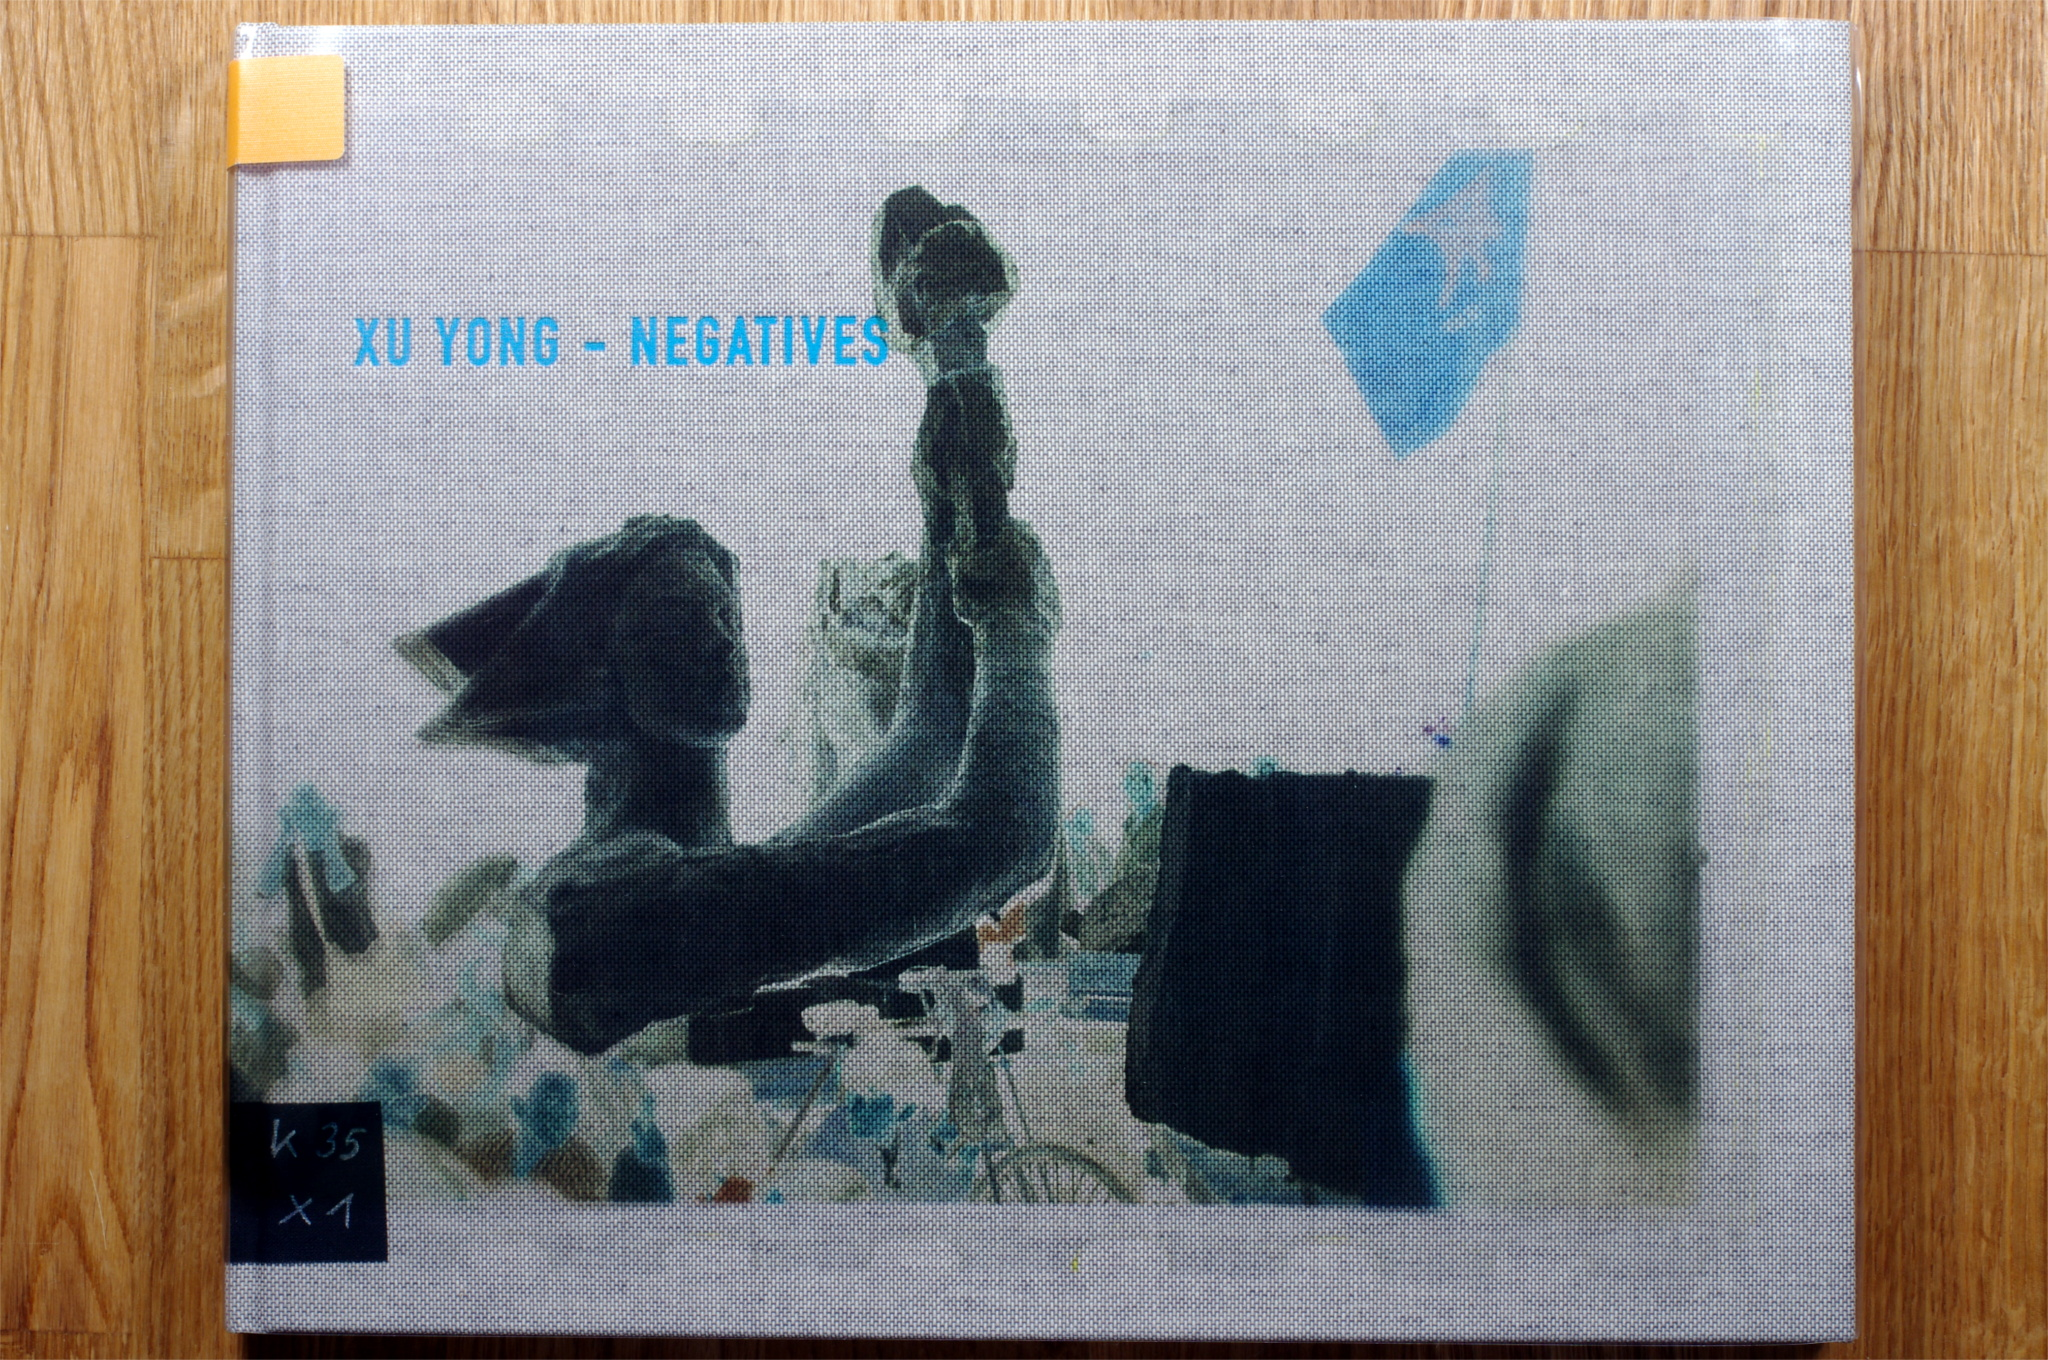 "The Cover of Xu Yongs ""Negatives""."